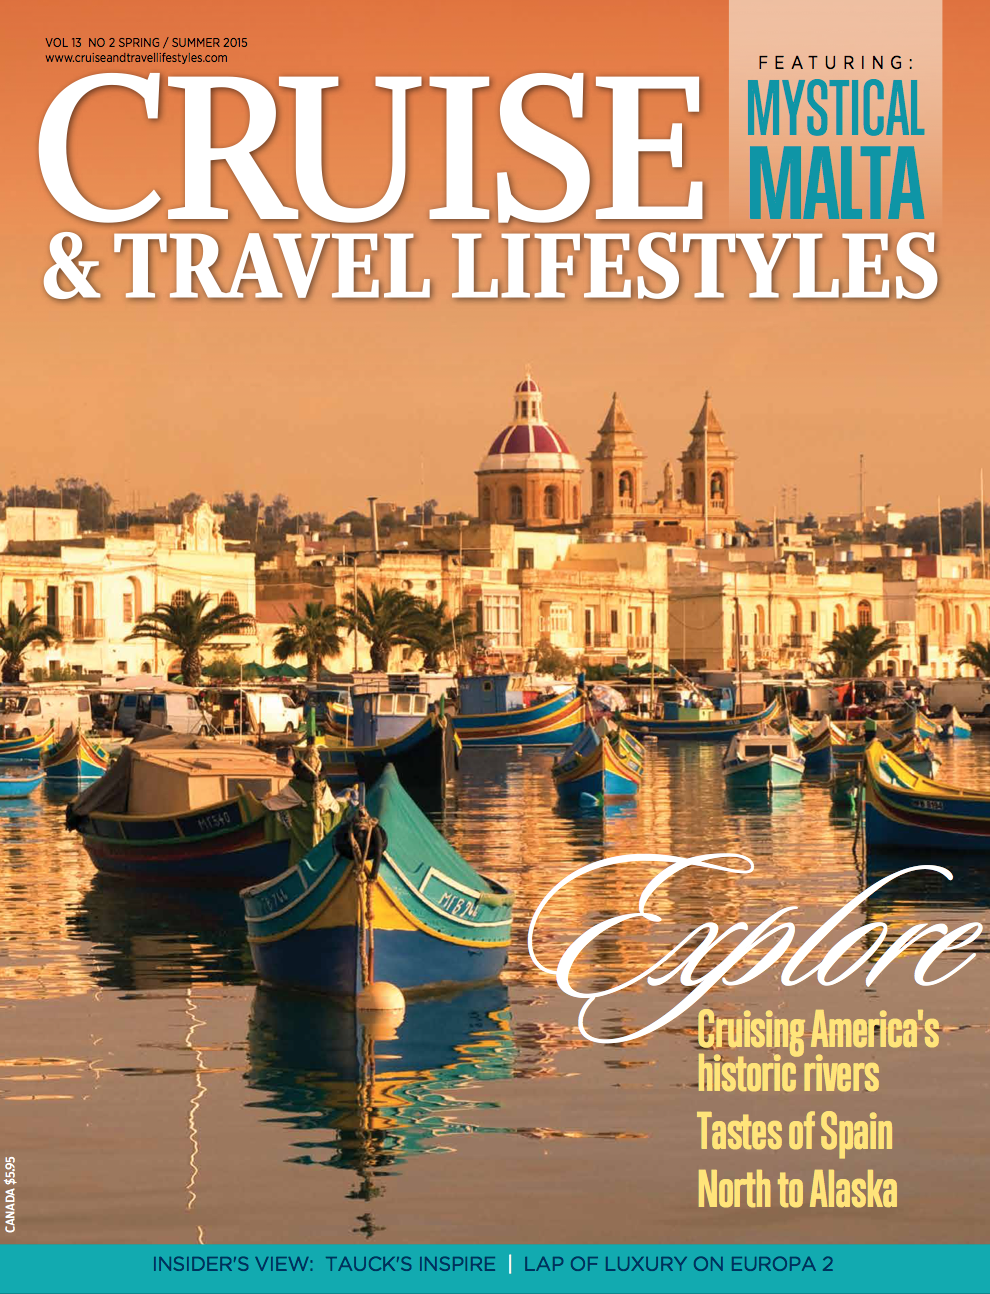 Staying Places<br>CRUISE & TRAVEL LIFESTYLES